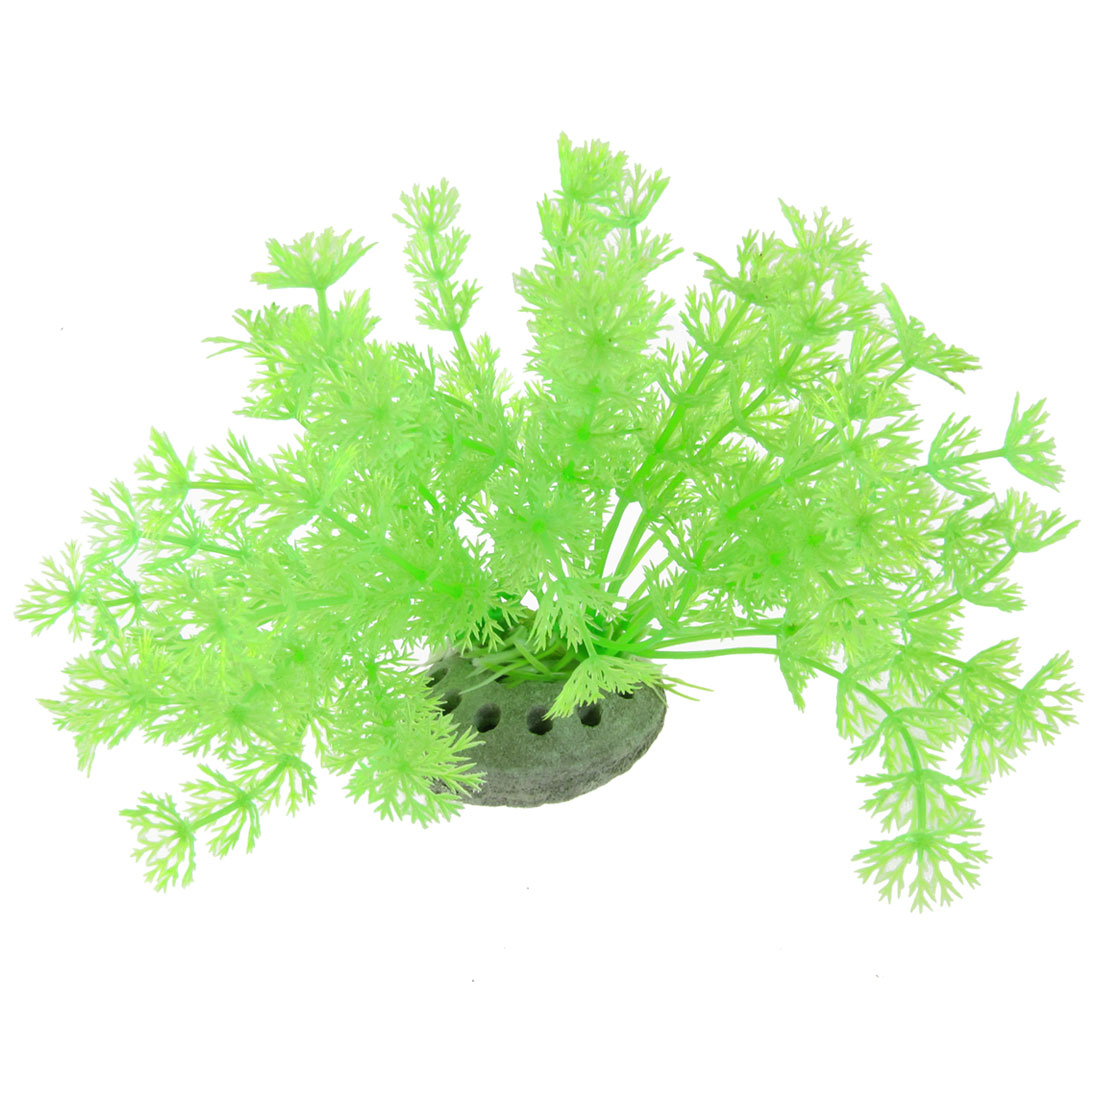 "Fish Tank 4.3"" High Plastic Round Leaves Green Plant w Ceramic Base"